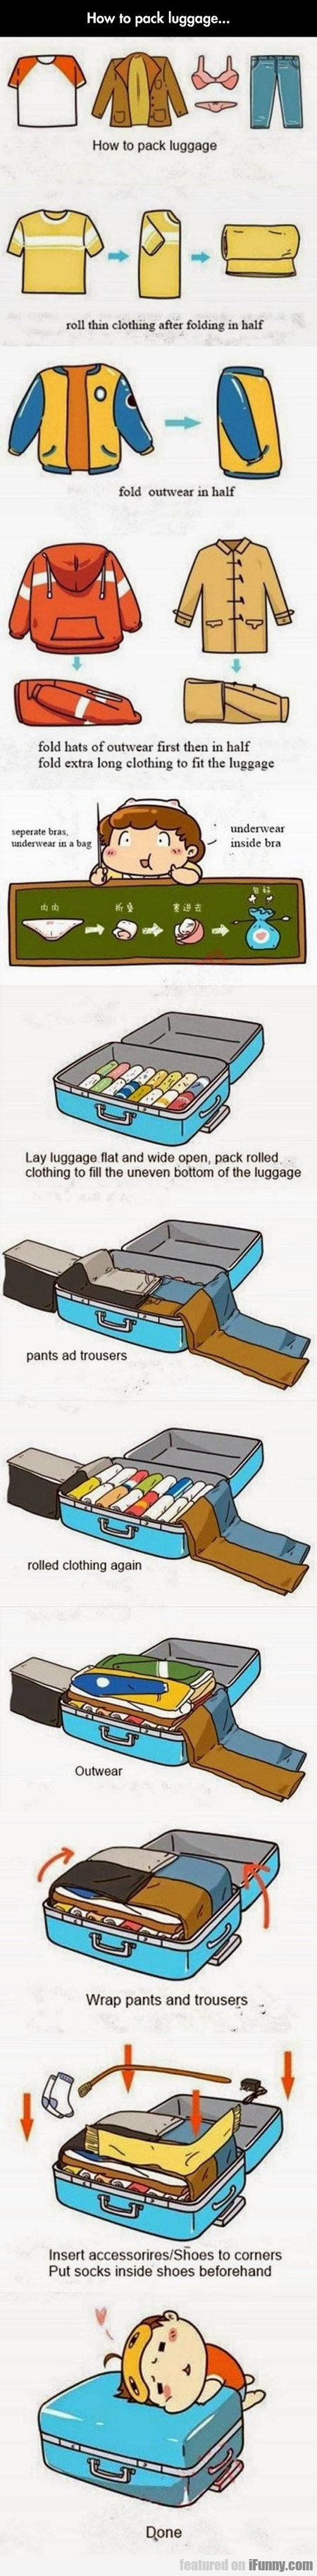 How to pack luggage...